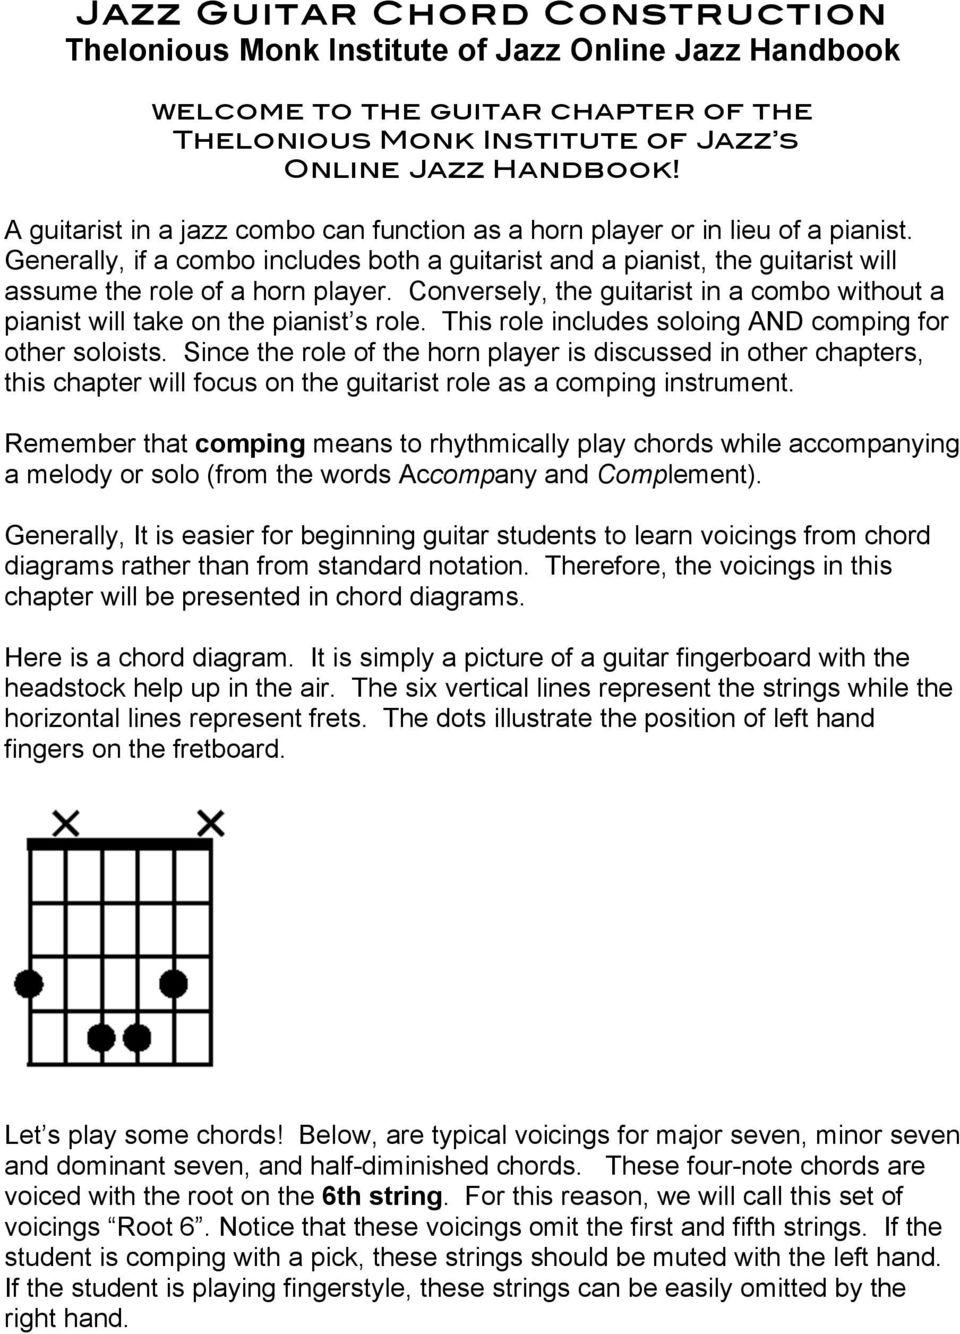 Jazz Guitar Chord Construction Thelonious Monk Institute Of Jazz